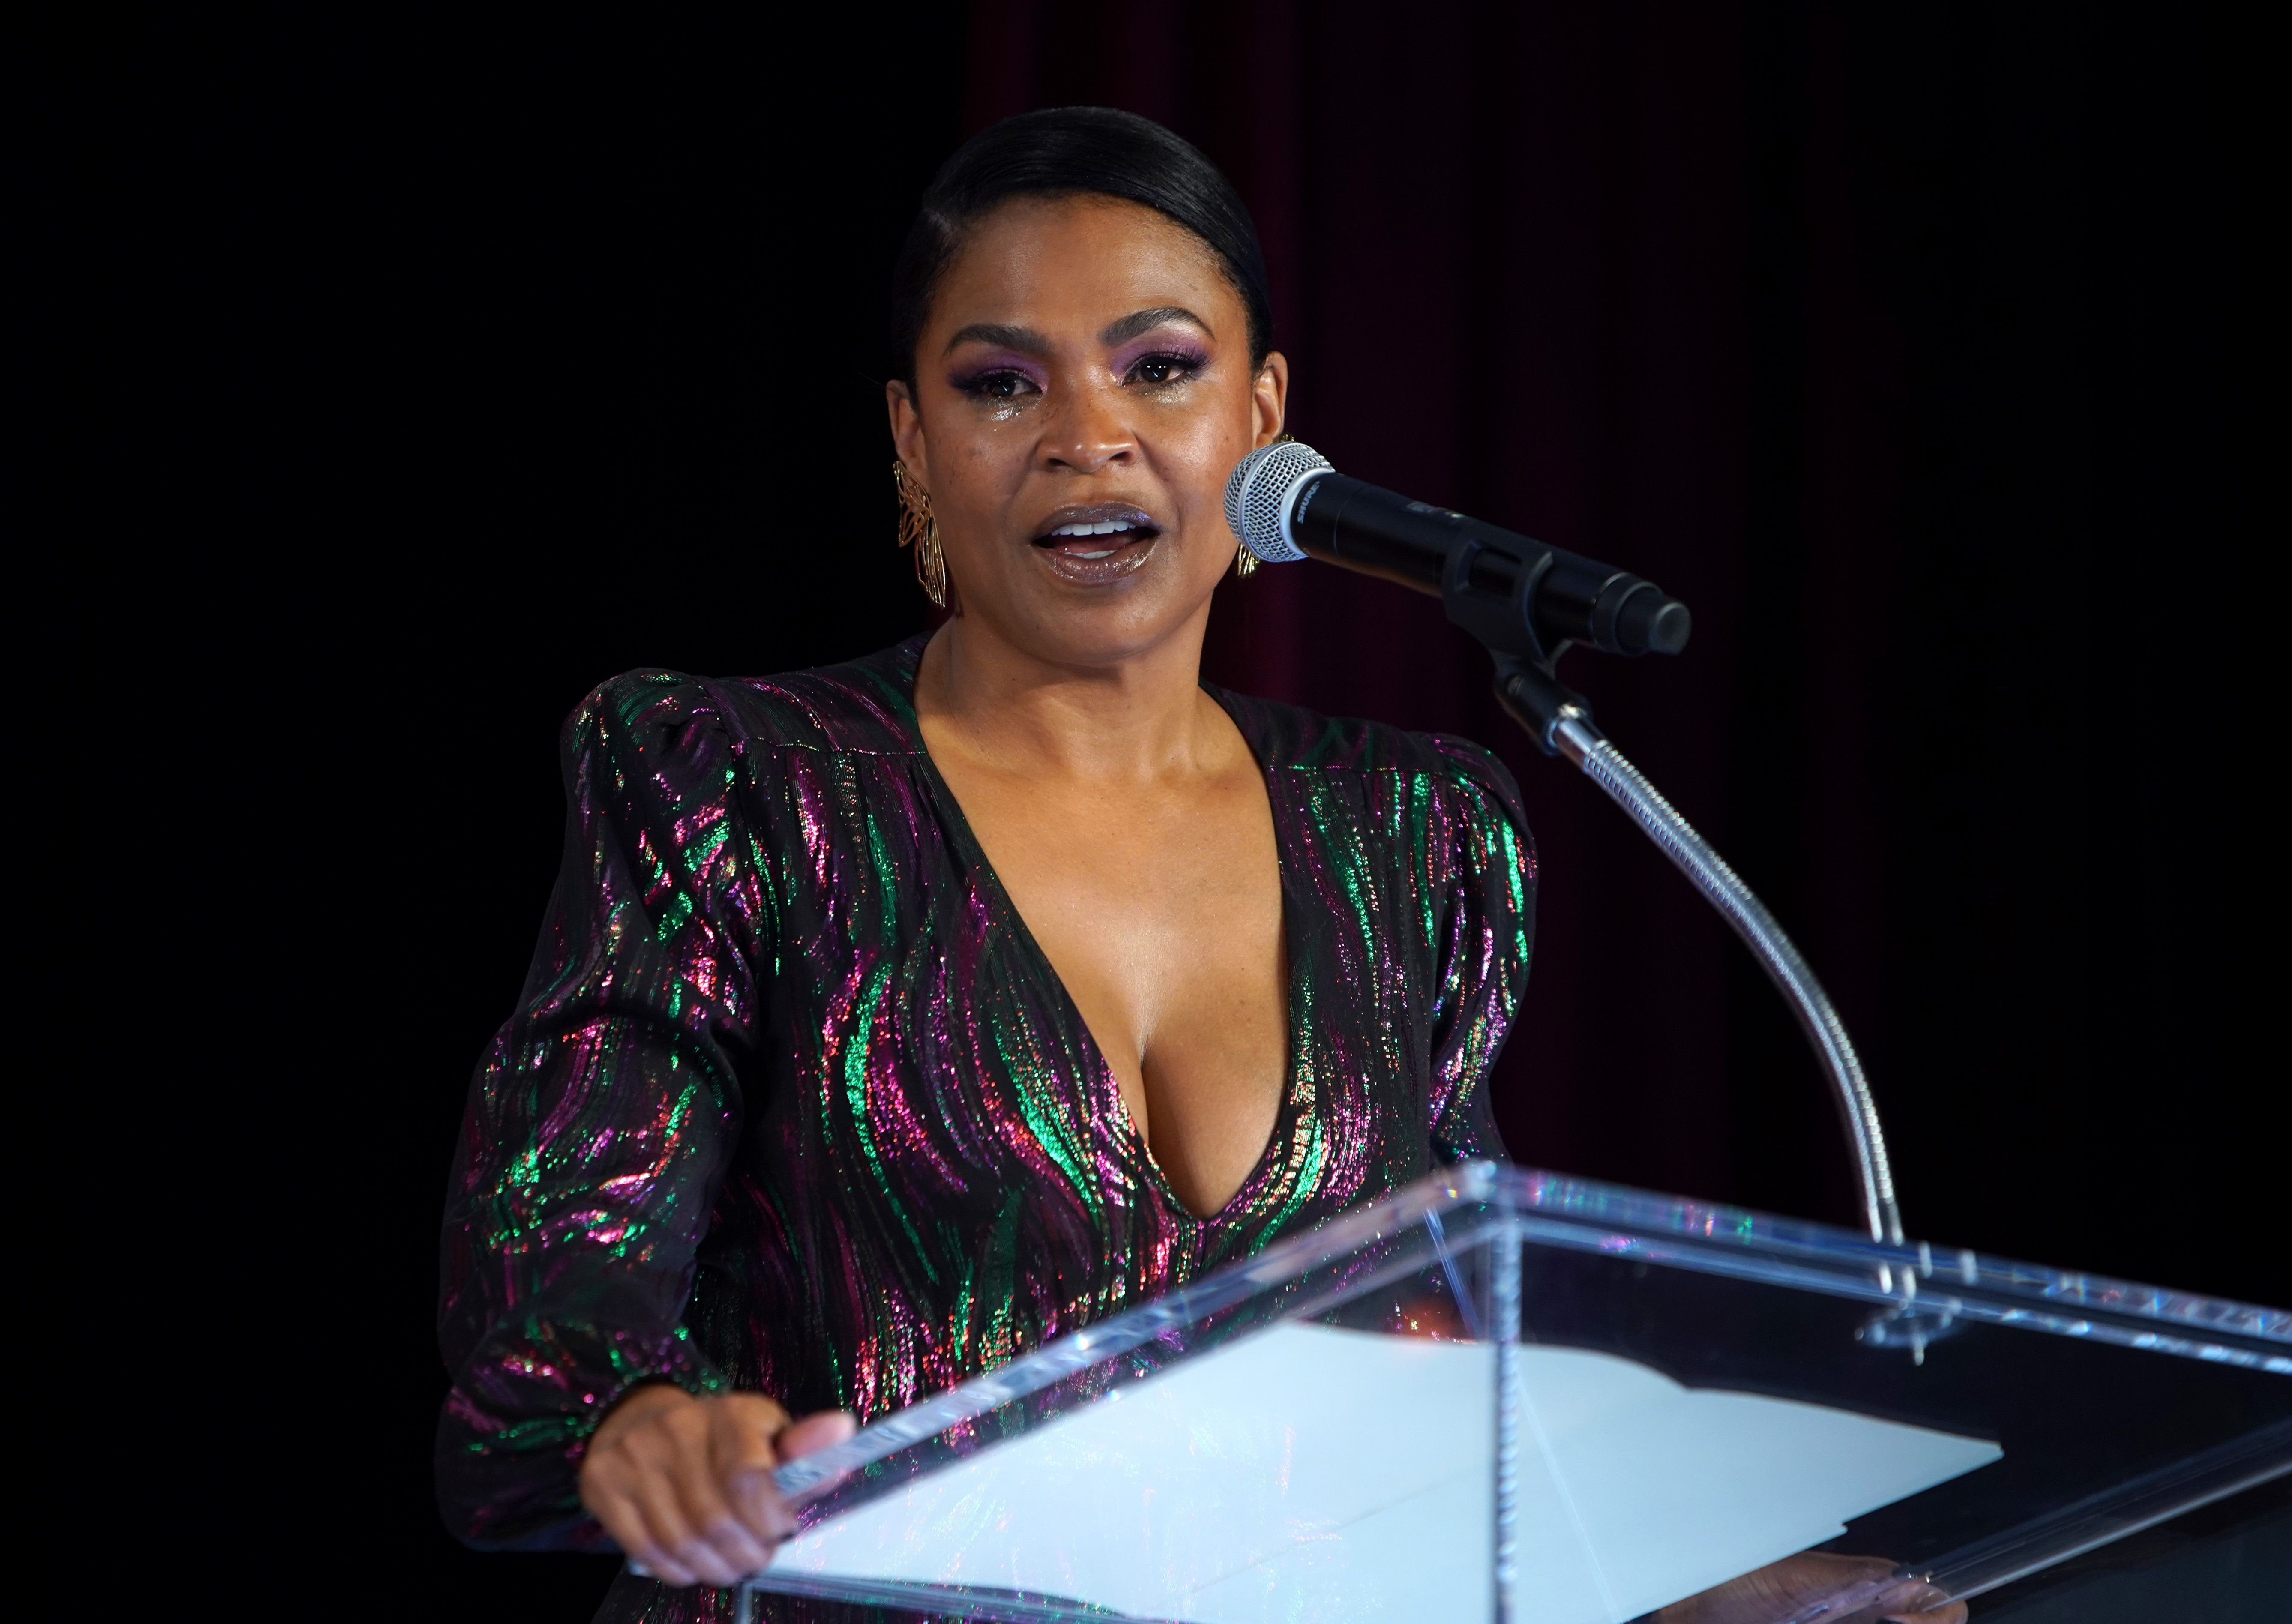 Nia Long speaks at the Celebration of Black Cinema in December 2019 in Los Angeles | Source: Getty Images